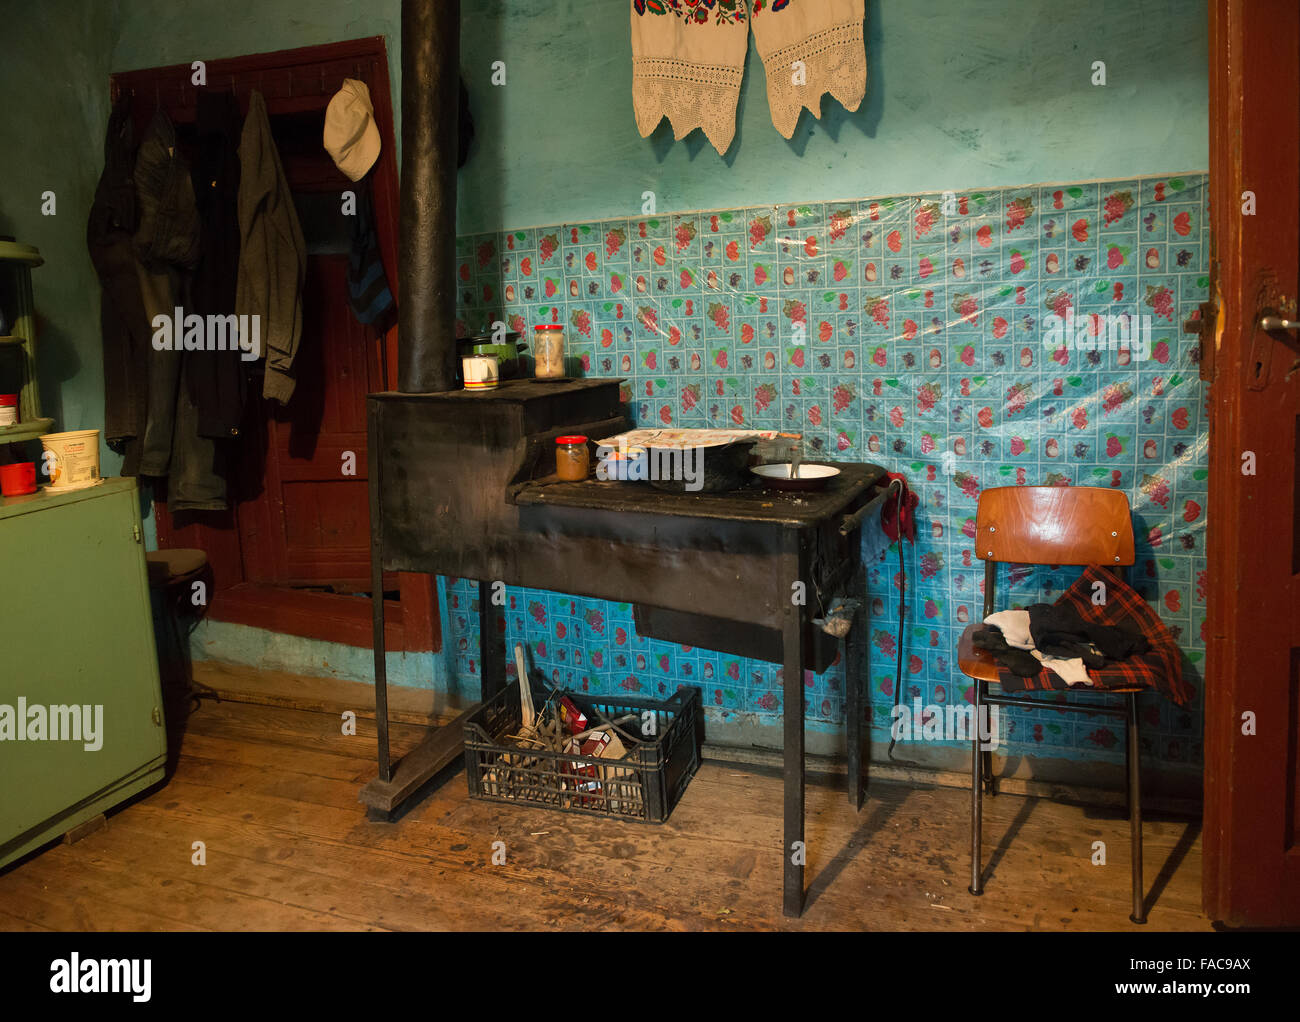 Traditional wood-burning stove in a house in the district of Maramures, Romania - Stock Image